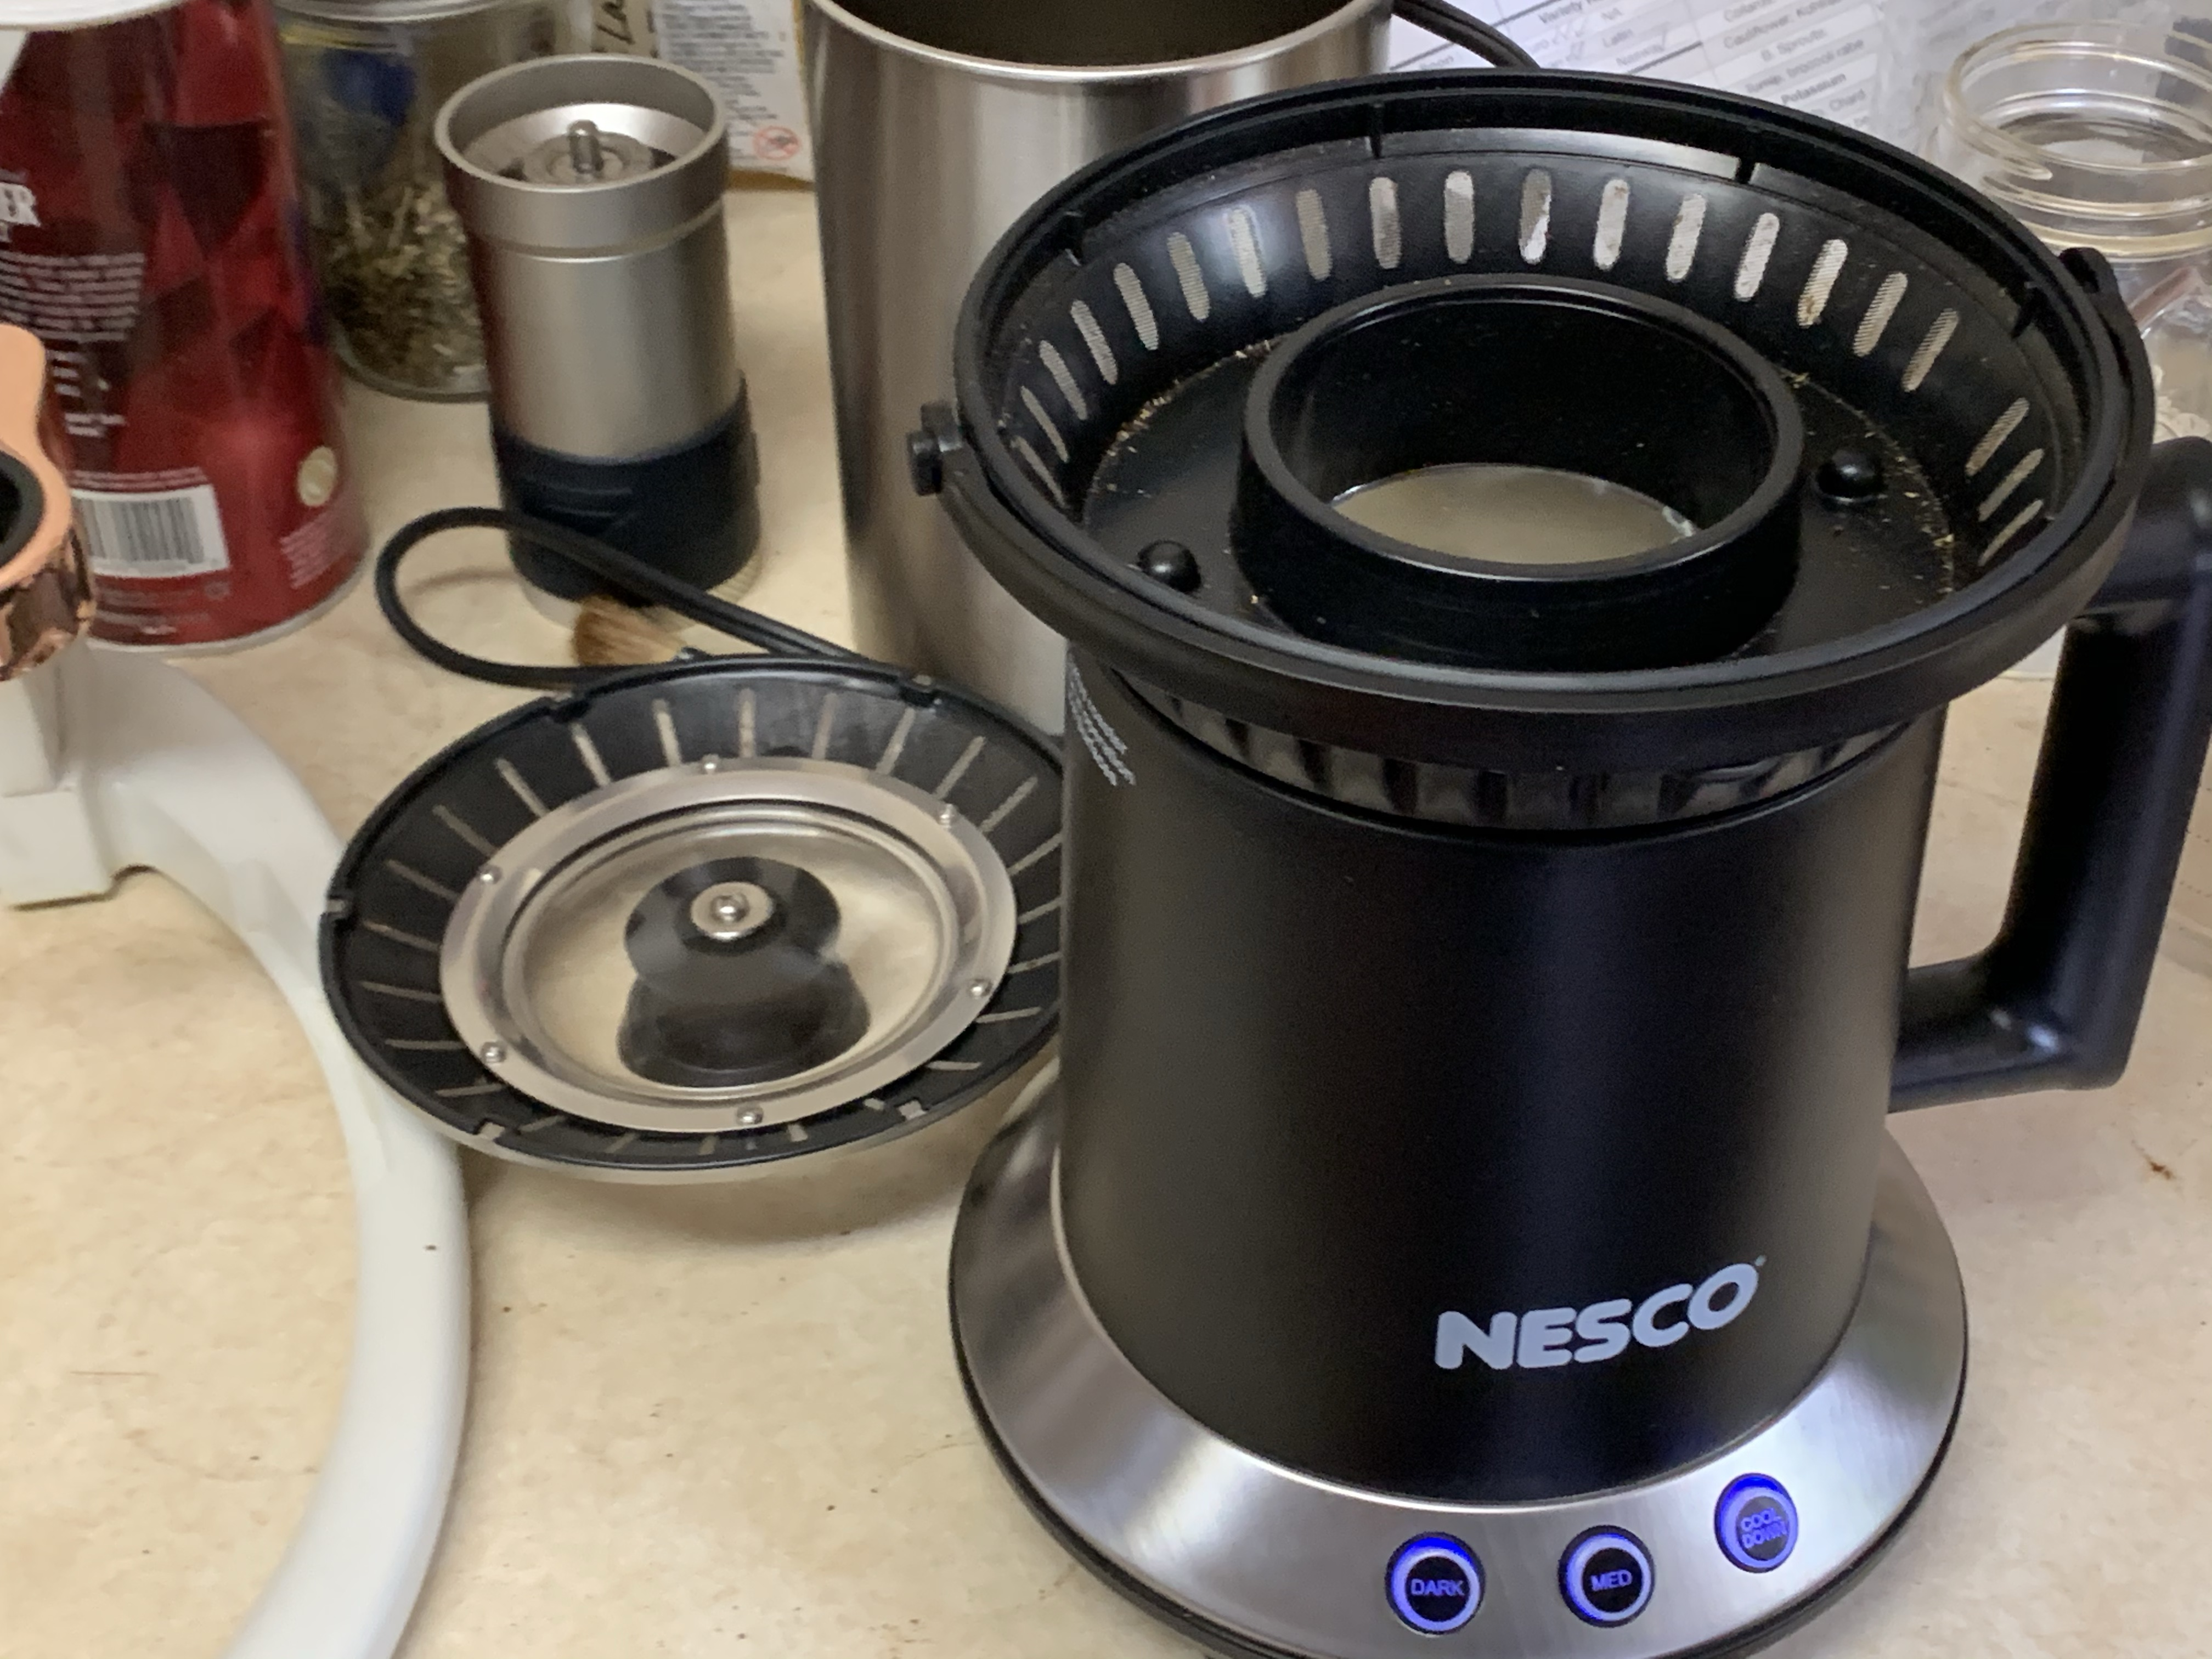 Image of Nesco coffee roaster with lid removed in forground, multiple items in background including Flair Espresso maker, kosher salt shaker, and manual coffee grinder.